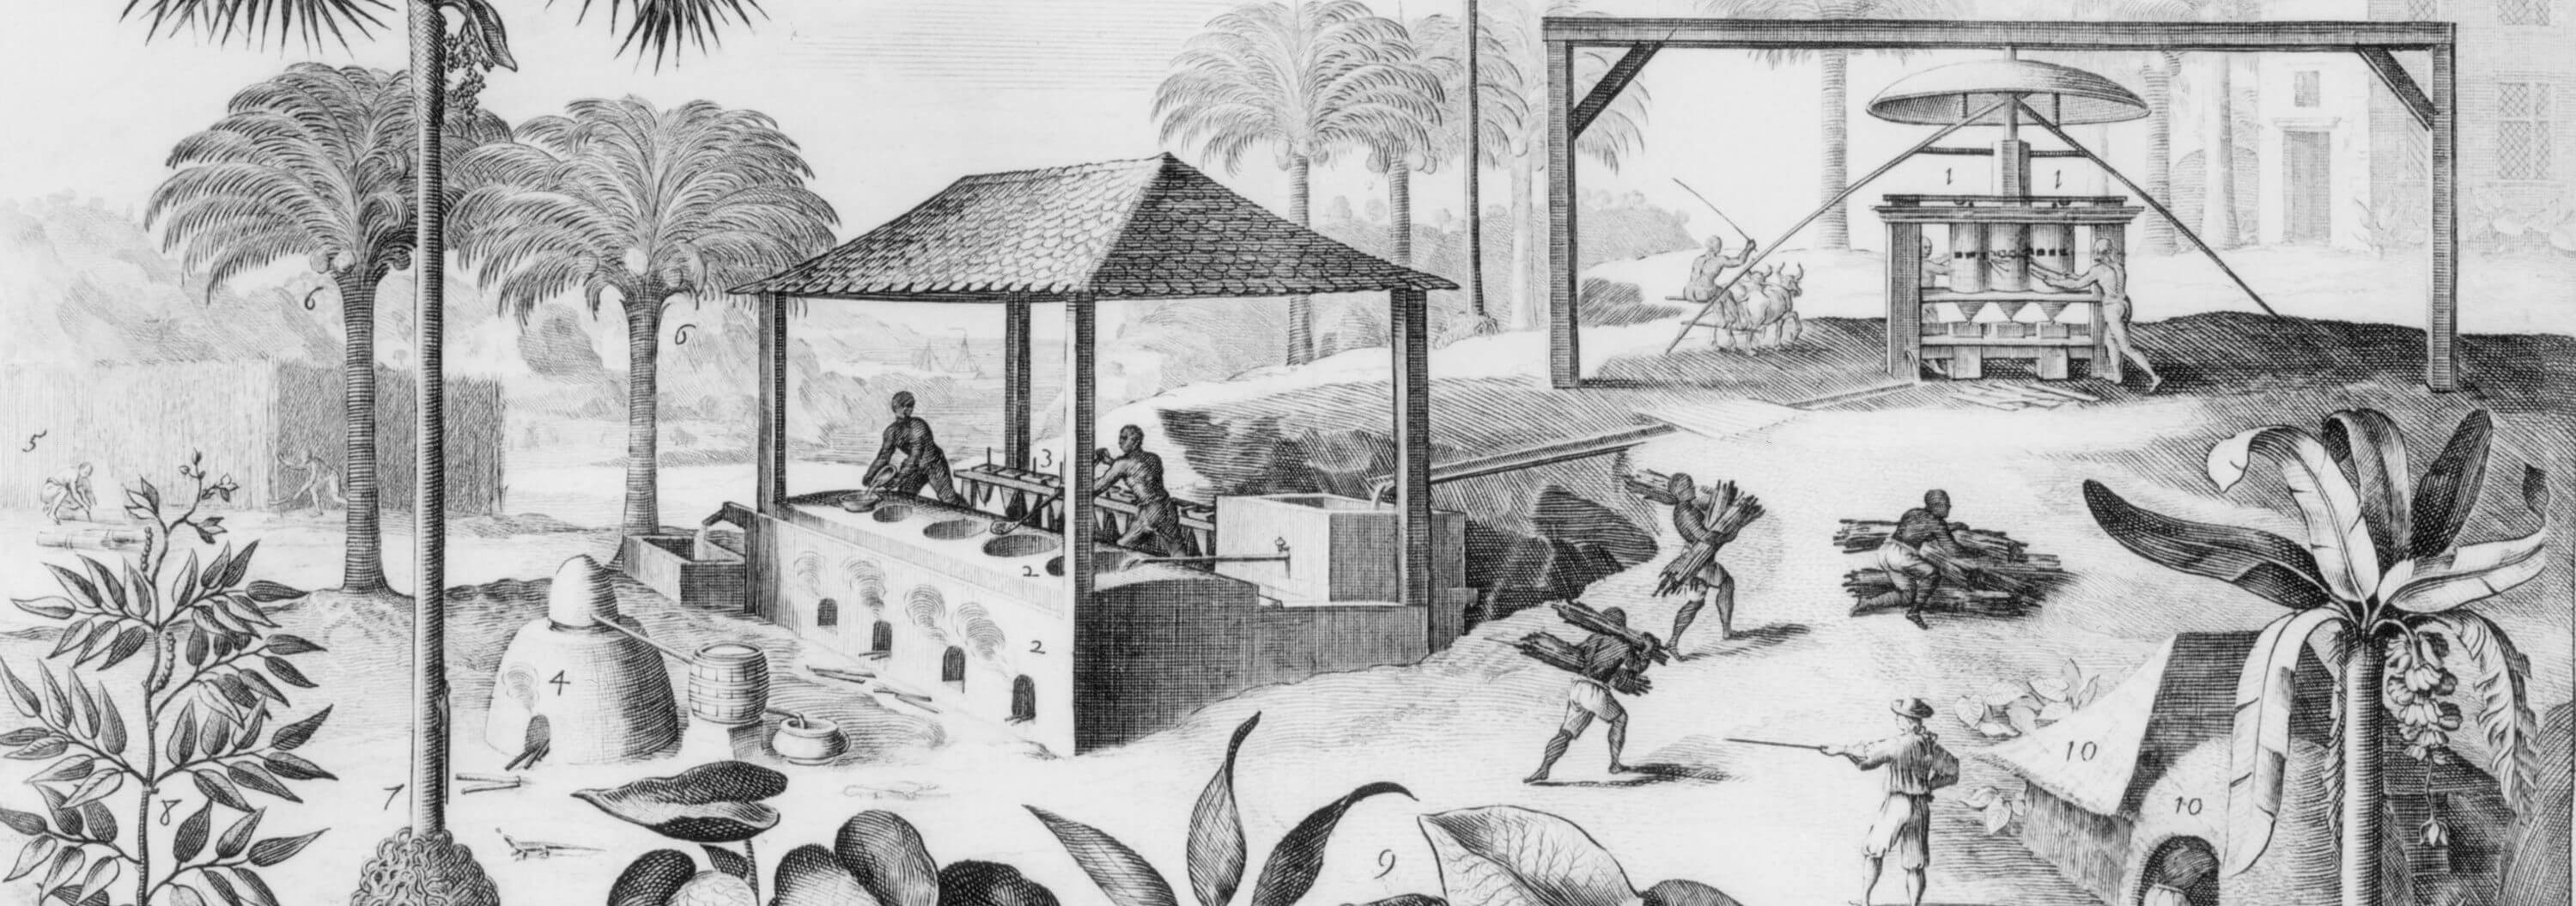 essay on slavery in jamaica We will write a cheap essay sample on colonies in jamaica specifically for you for only from slavery to freedom, jamaica has had one of the important economies.